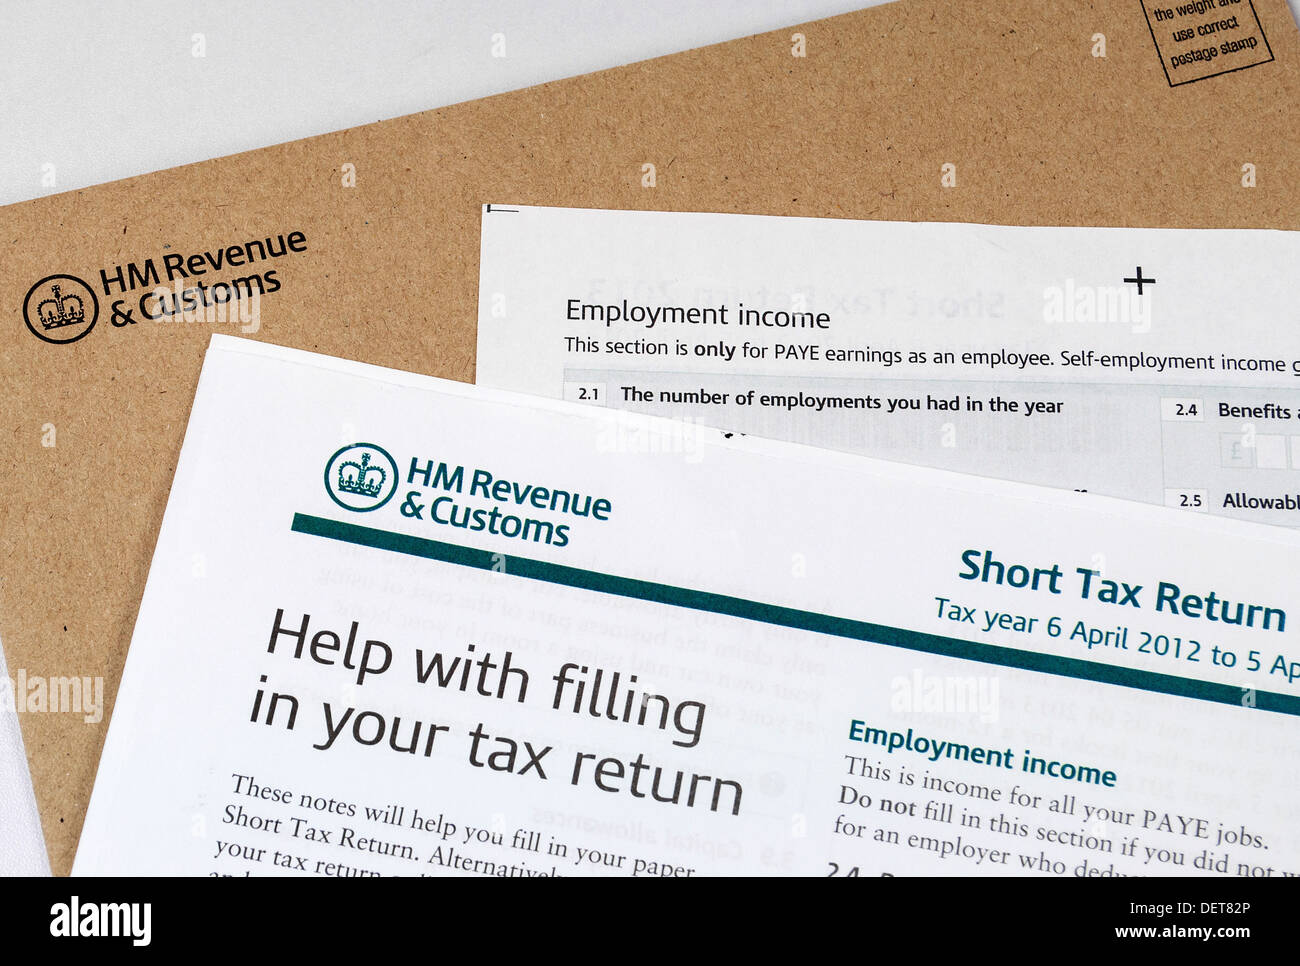 HMRC income tax return forms - Stock Image